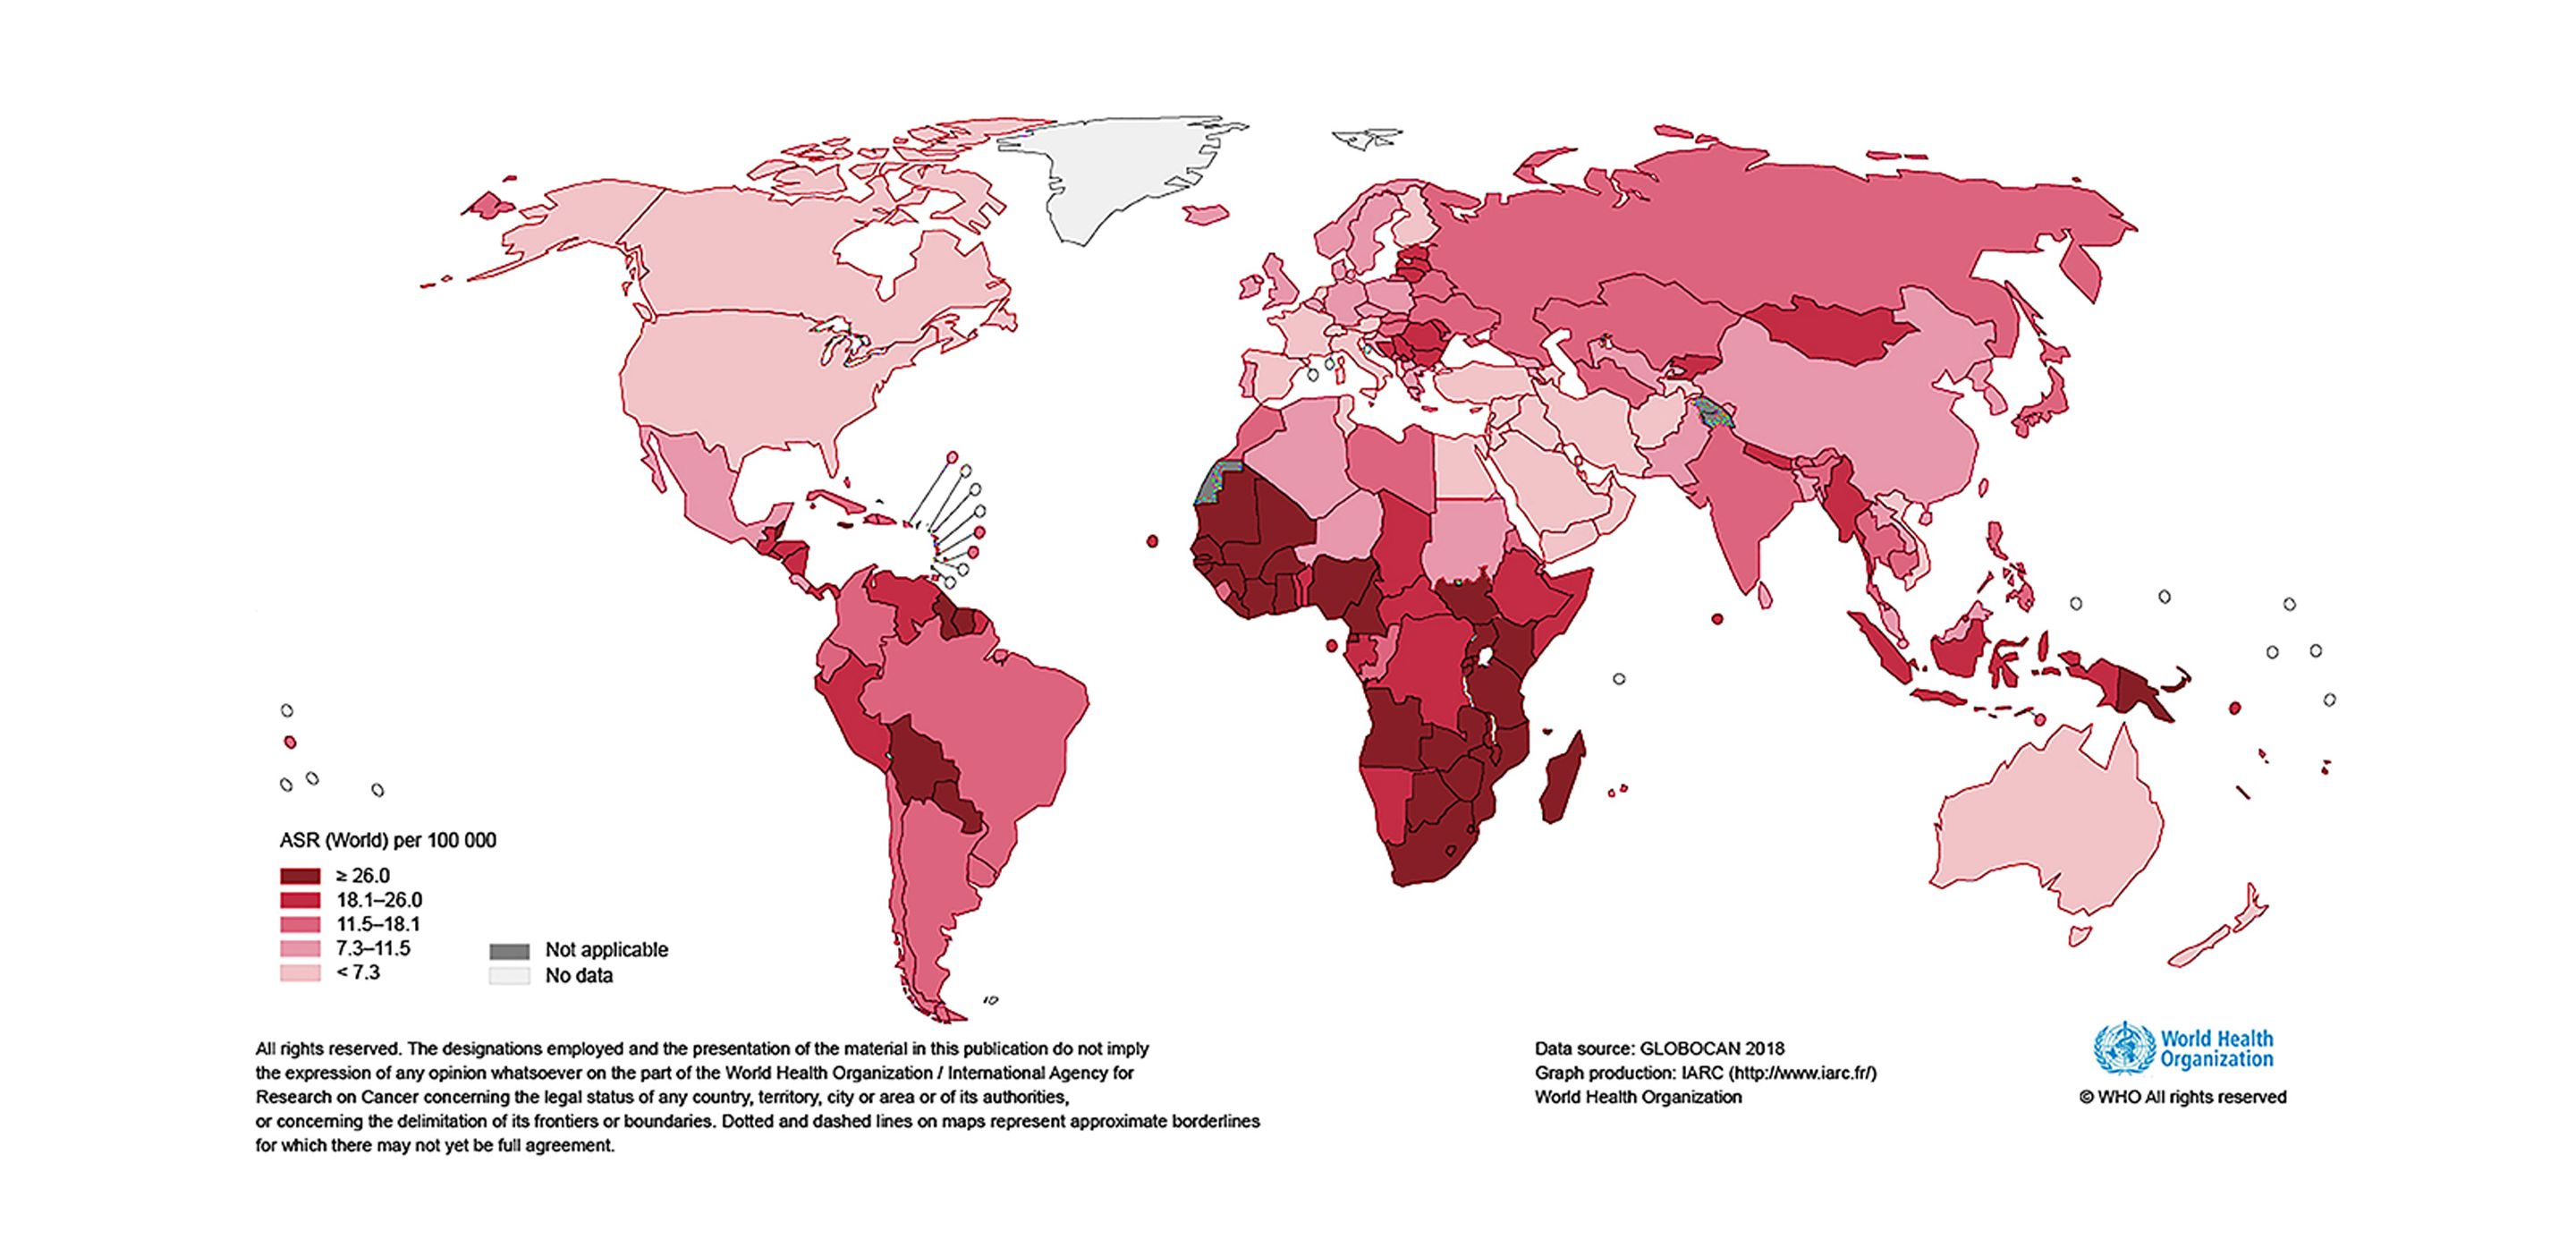 Estimated age-standardized incidence rates (World) in 2018